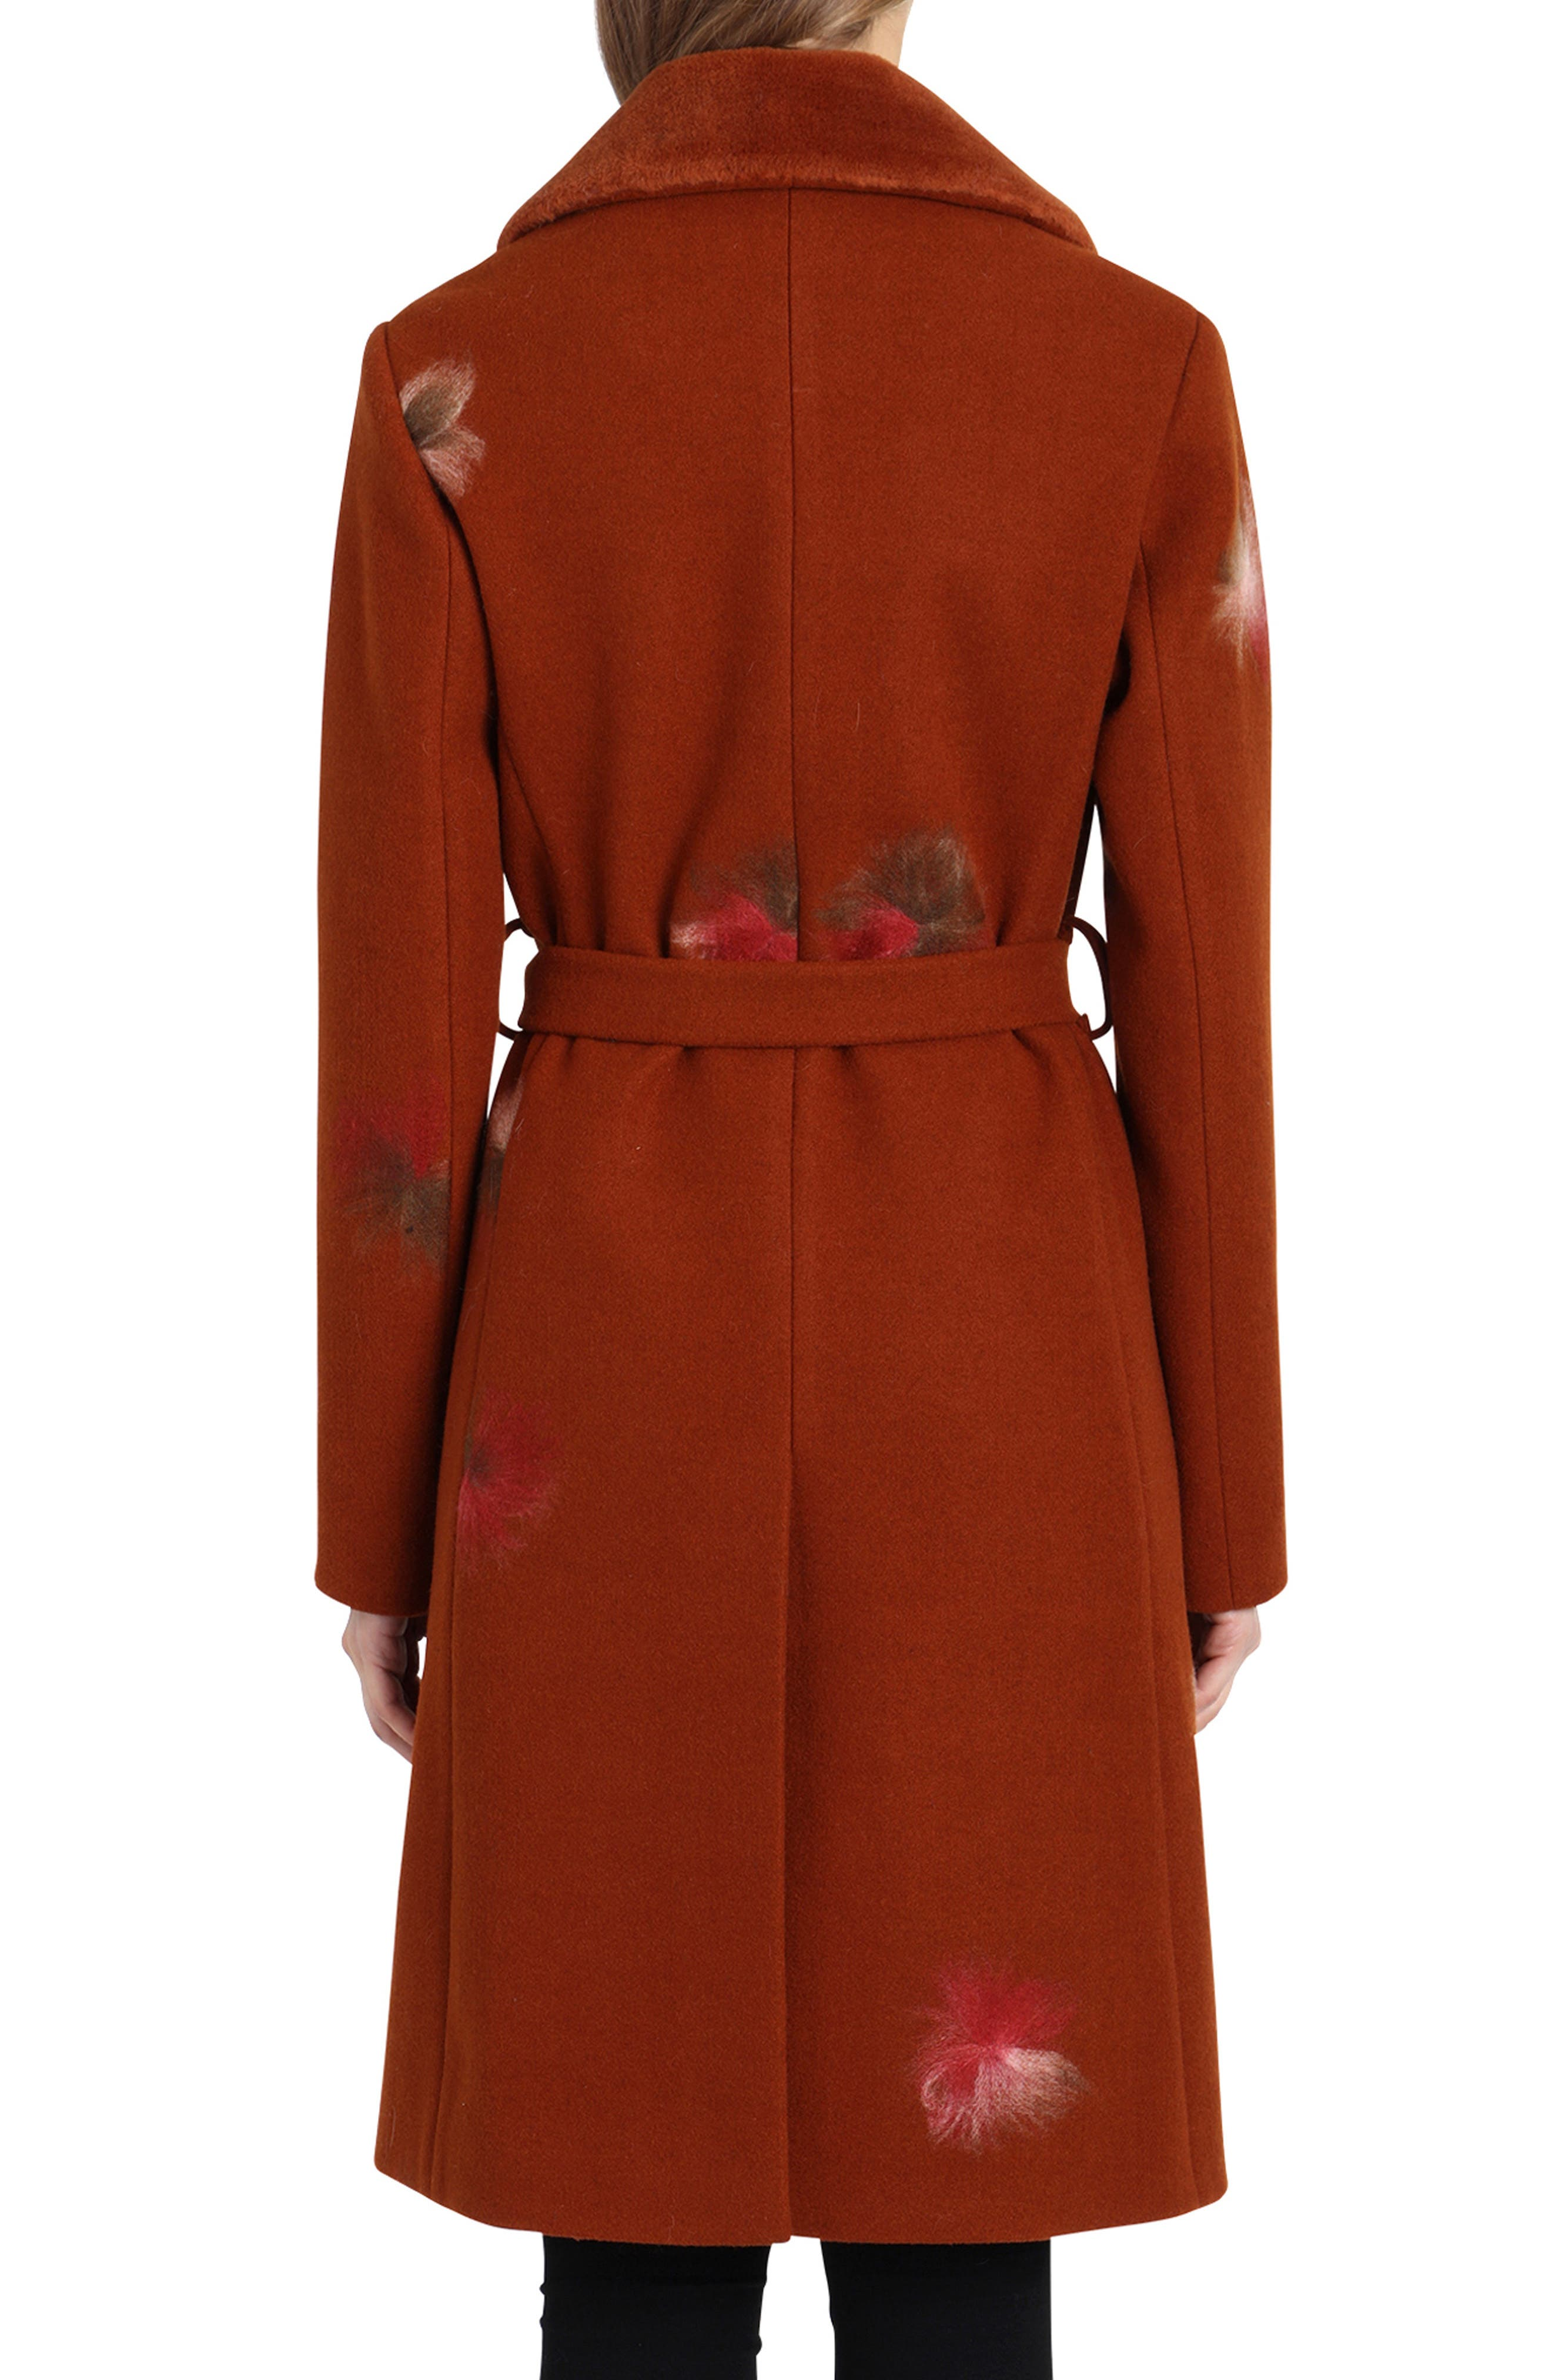 BADGLEY MISCHKA COLLECTION,                             Badgley Mischka Felted Embroidery Wool Blend Coat,                             Alternate thumbnail 2, color,                             801